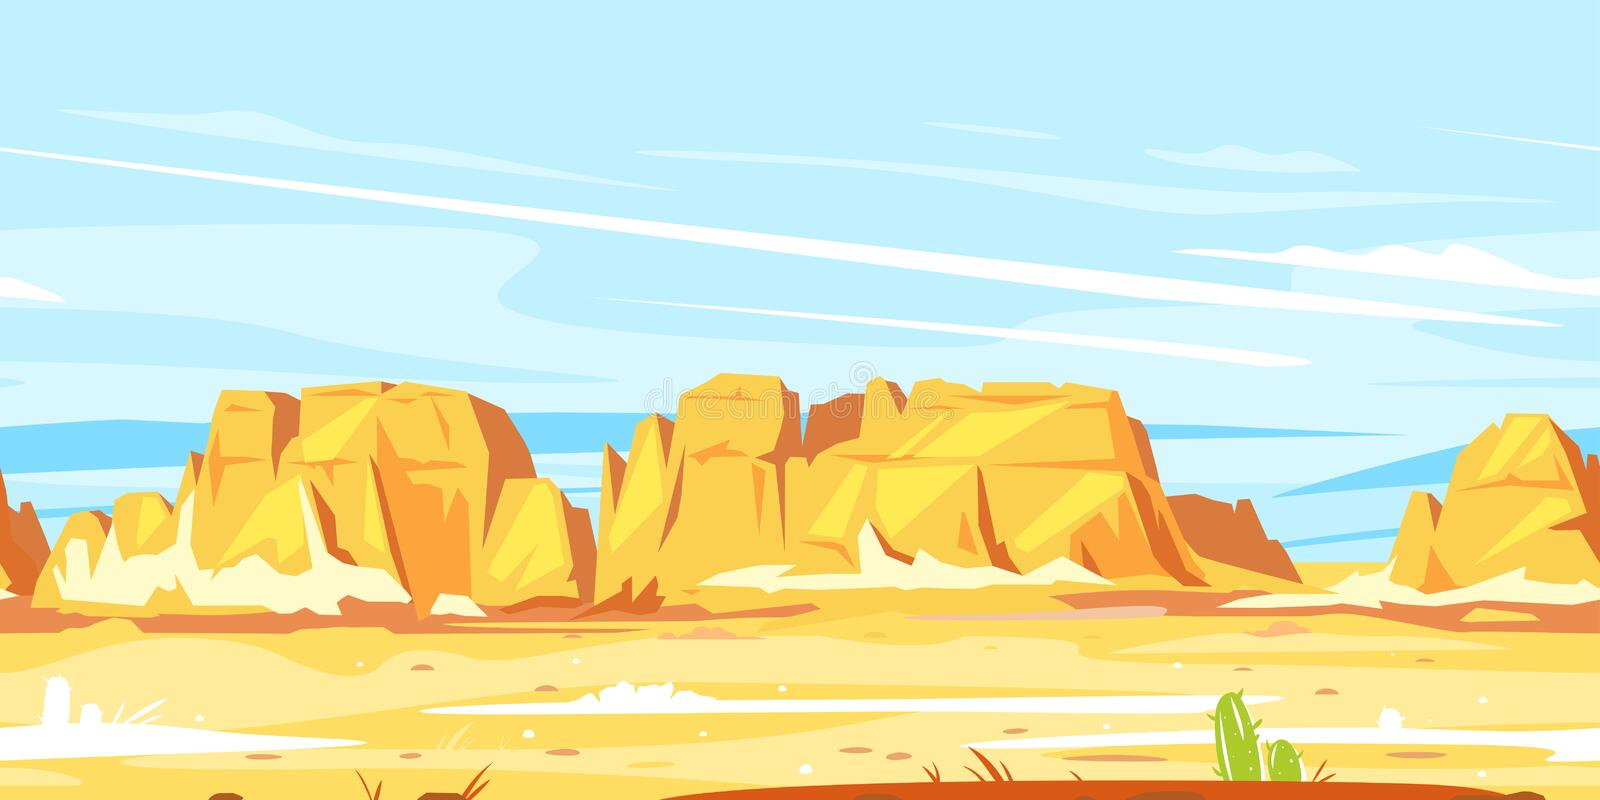 Desert canyon landscape game background royalty free illustration